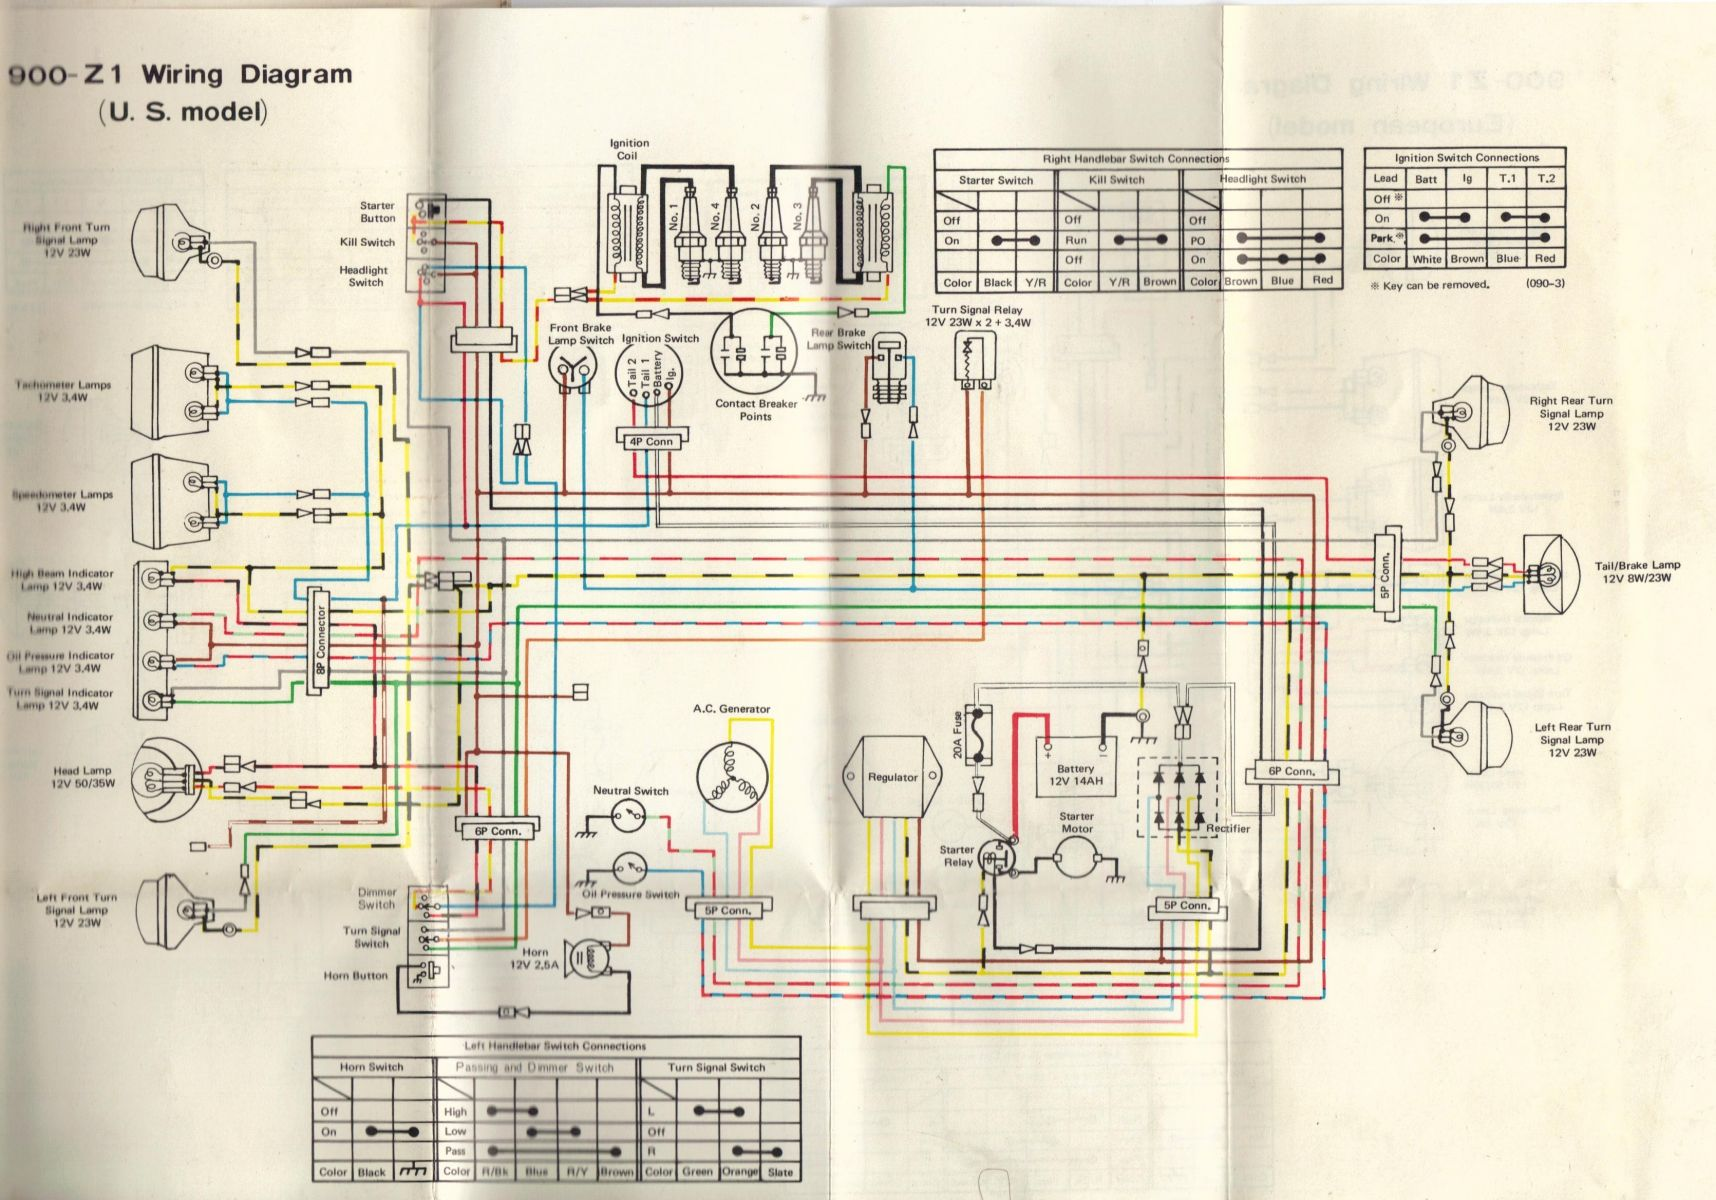 Wiring Diagram For Kawasaki Z1 1980 Kz1000 Color 1975 900 20amp Fuse Blowes Imediately Kzrider Forum Rh Com Klf 300 4 Wheeler